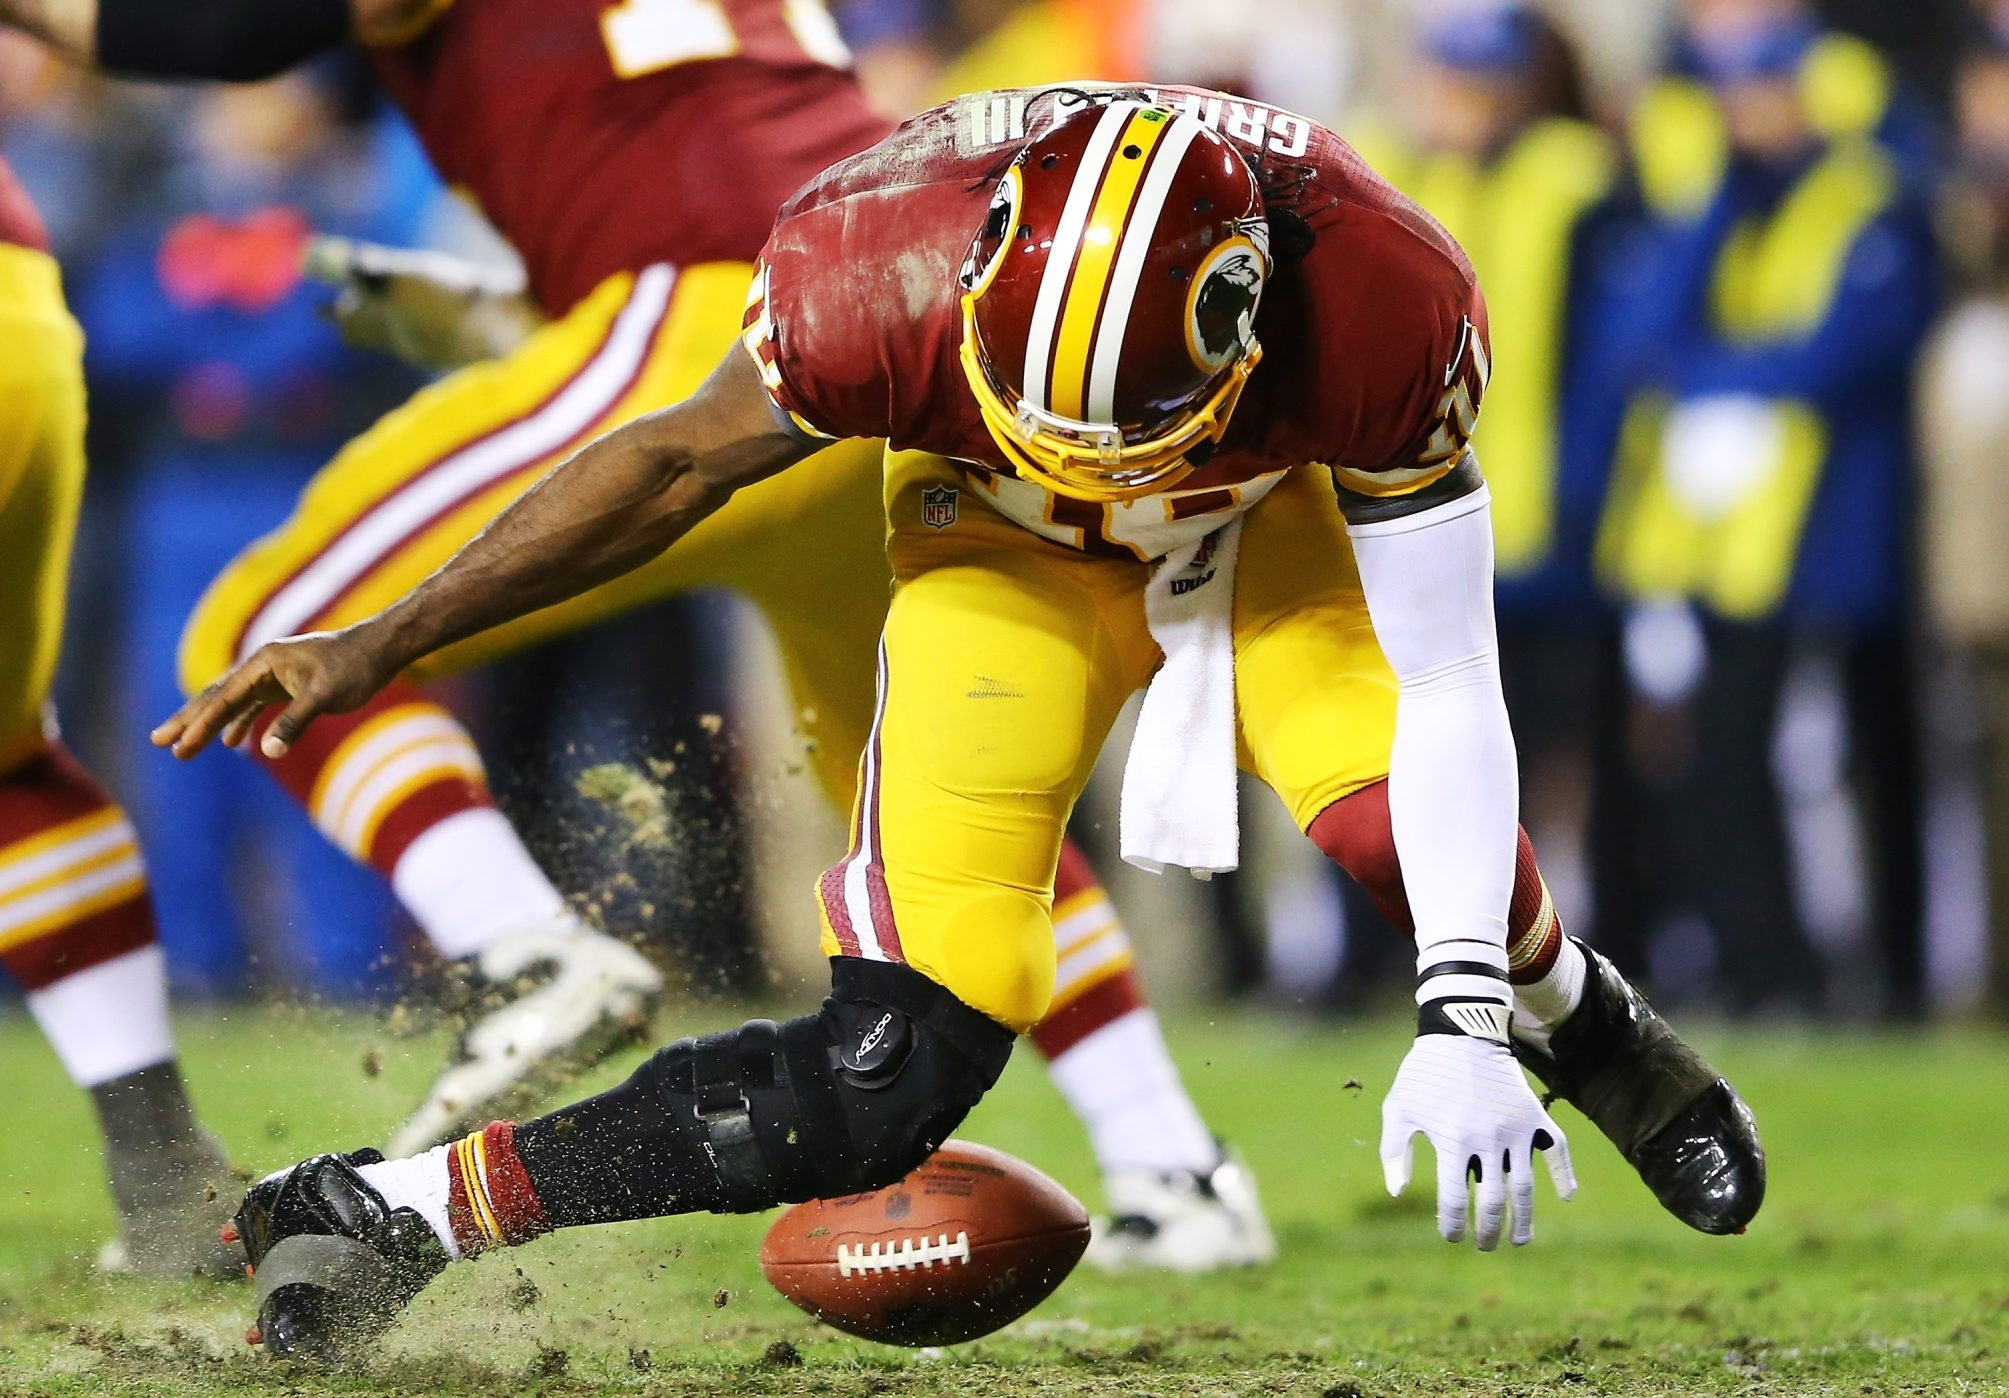 Play that injured Robert Griffin III.